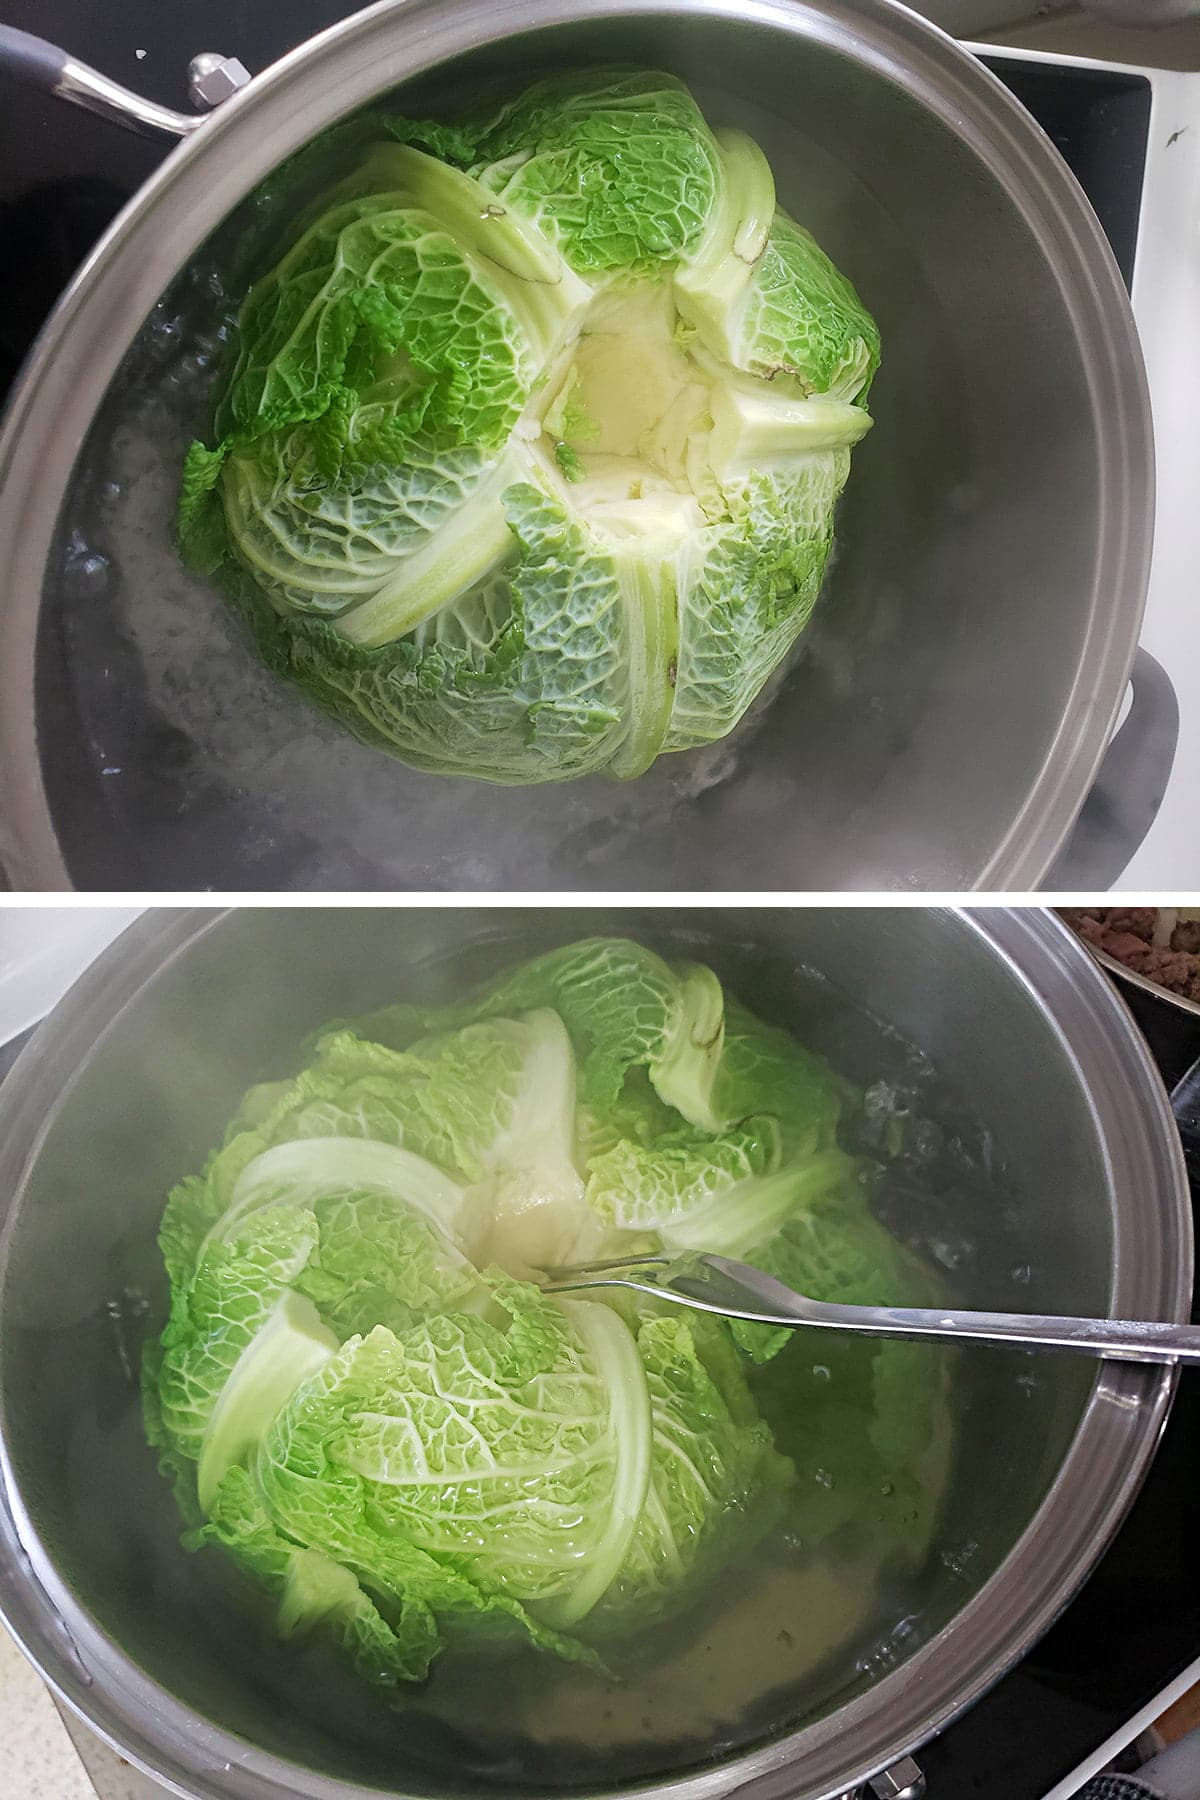 A two photo compilation image showing cabbages being boiled in a large pot.